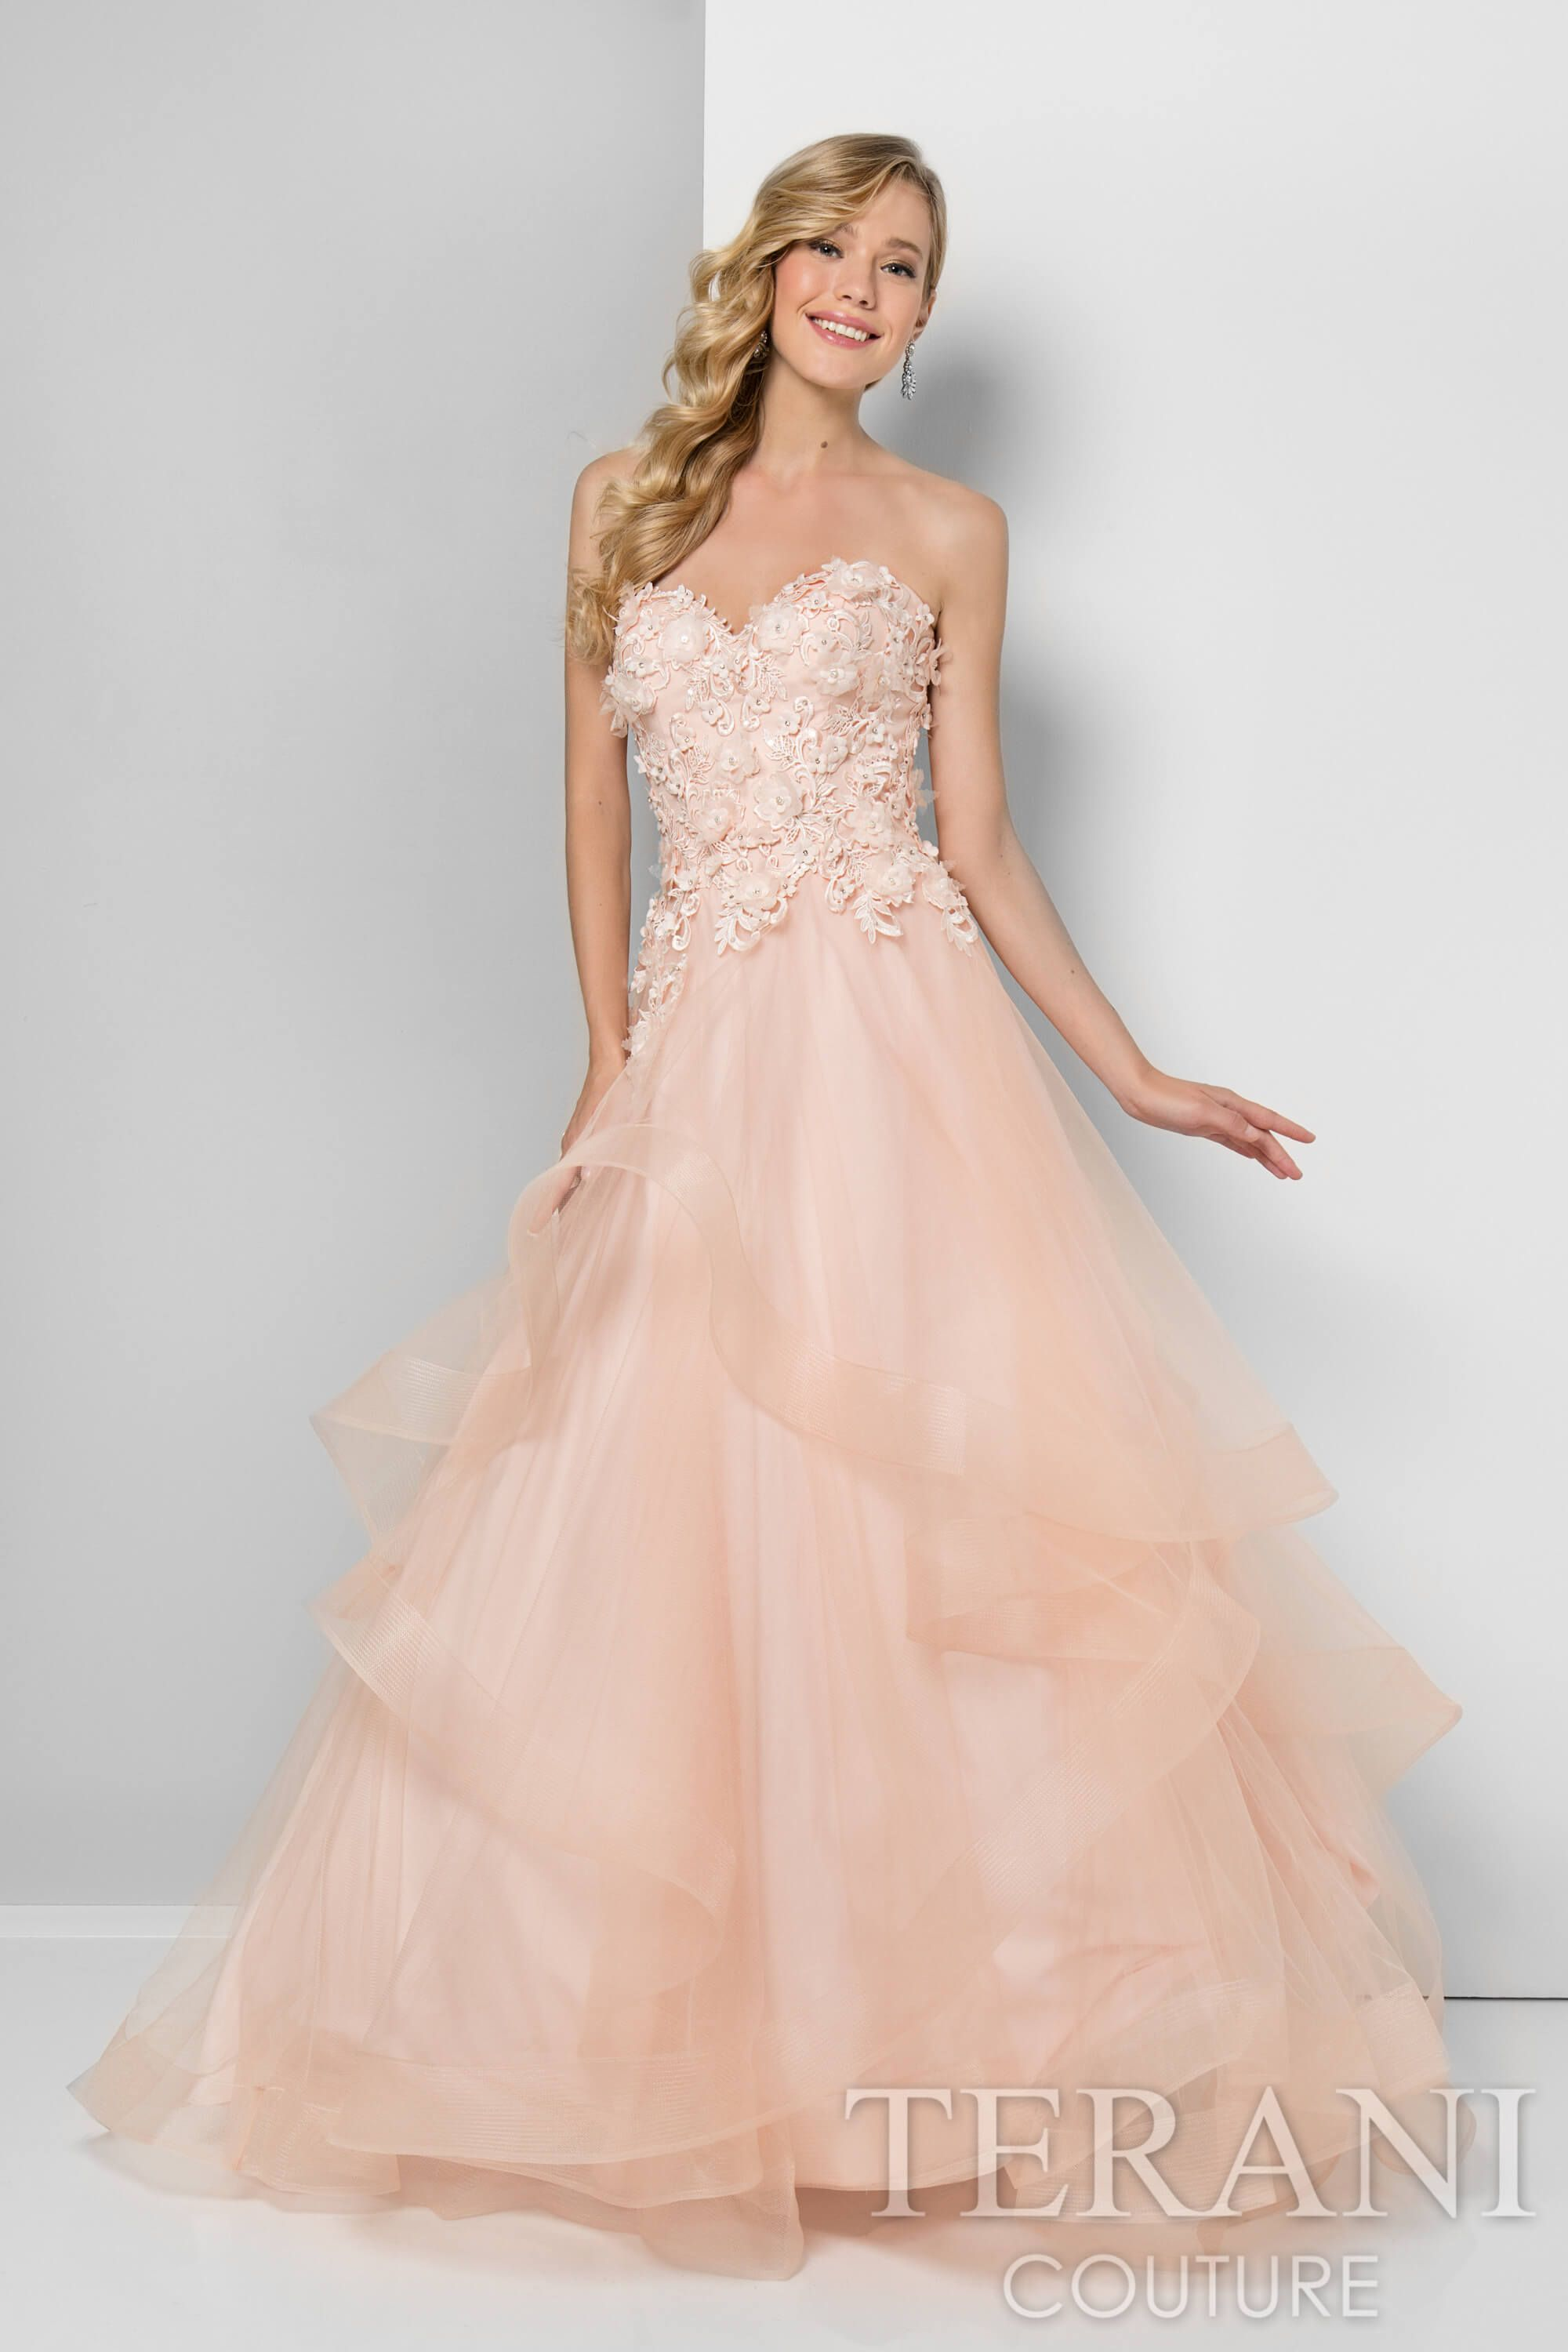 Designer prom dress in a peach cream color featuring organza ...